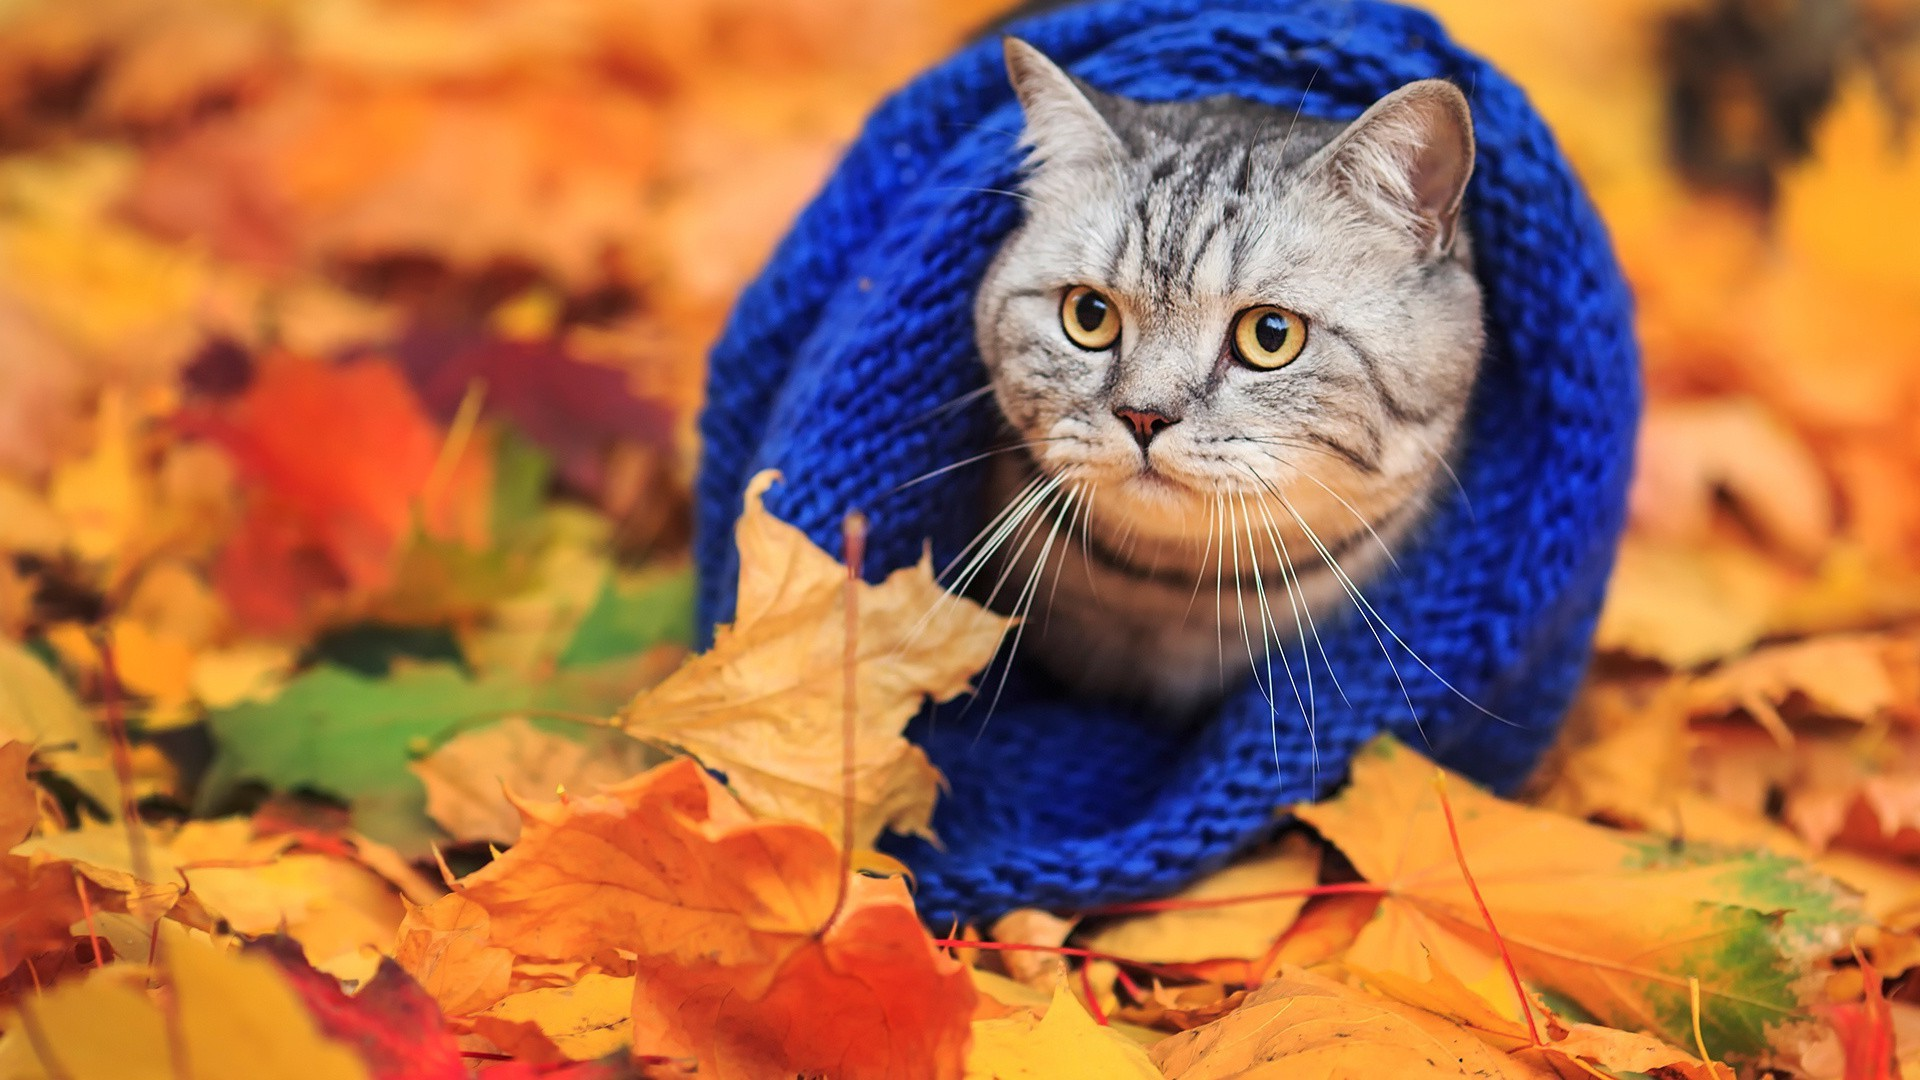 animals, Cat, Woolly Hat, Leaves, Fall Wallpapers HD / Desktop and Mobile  Backgrounds